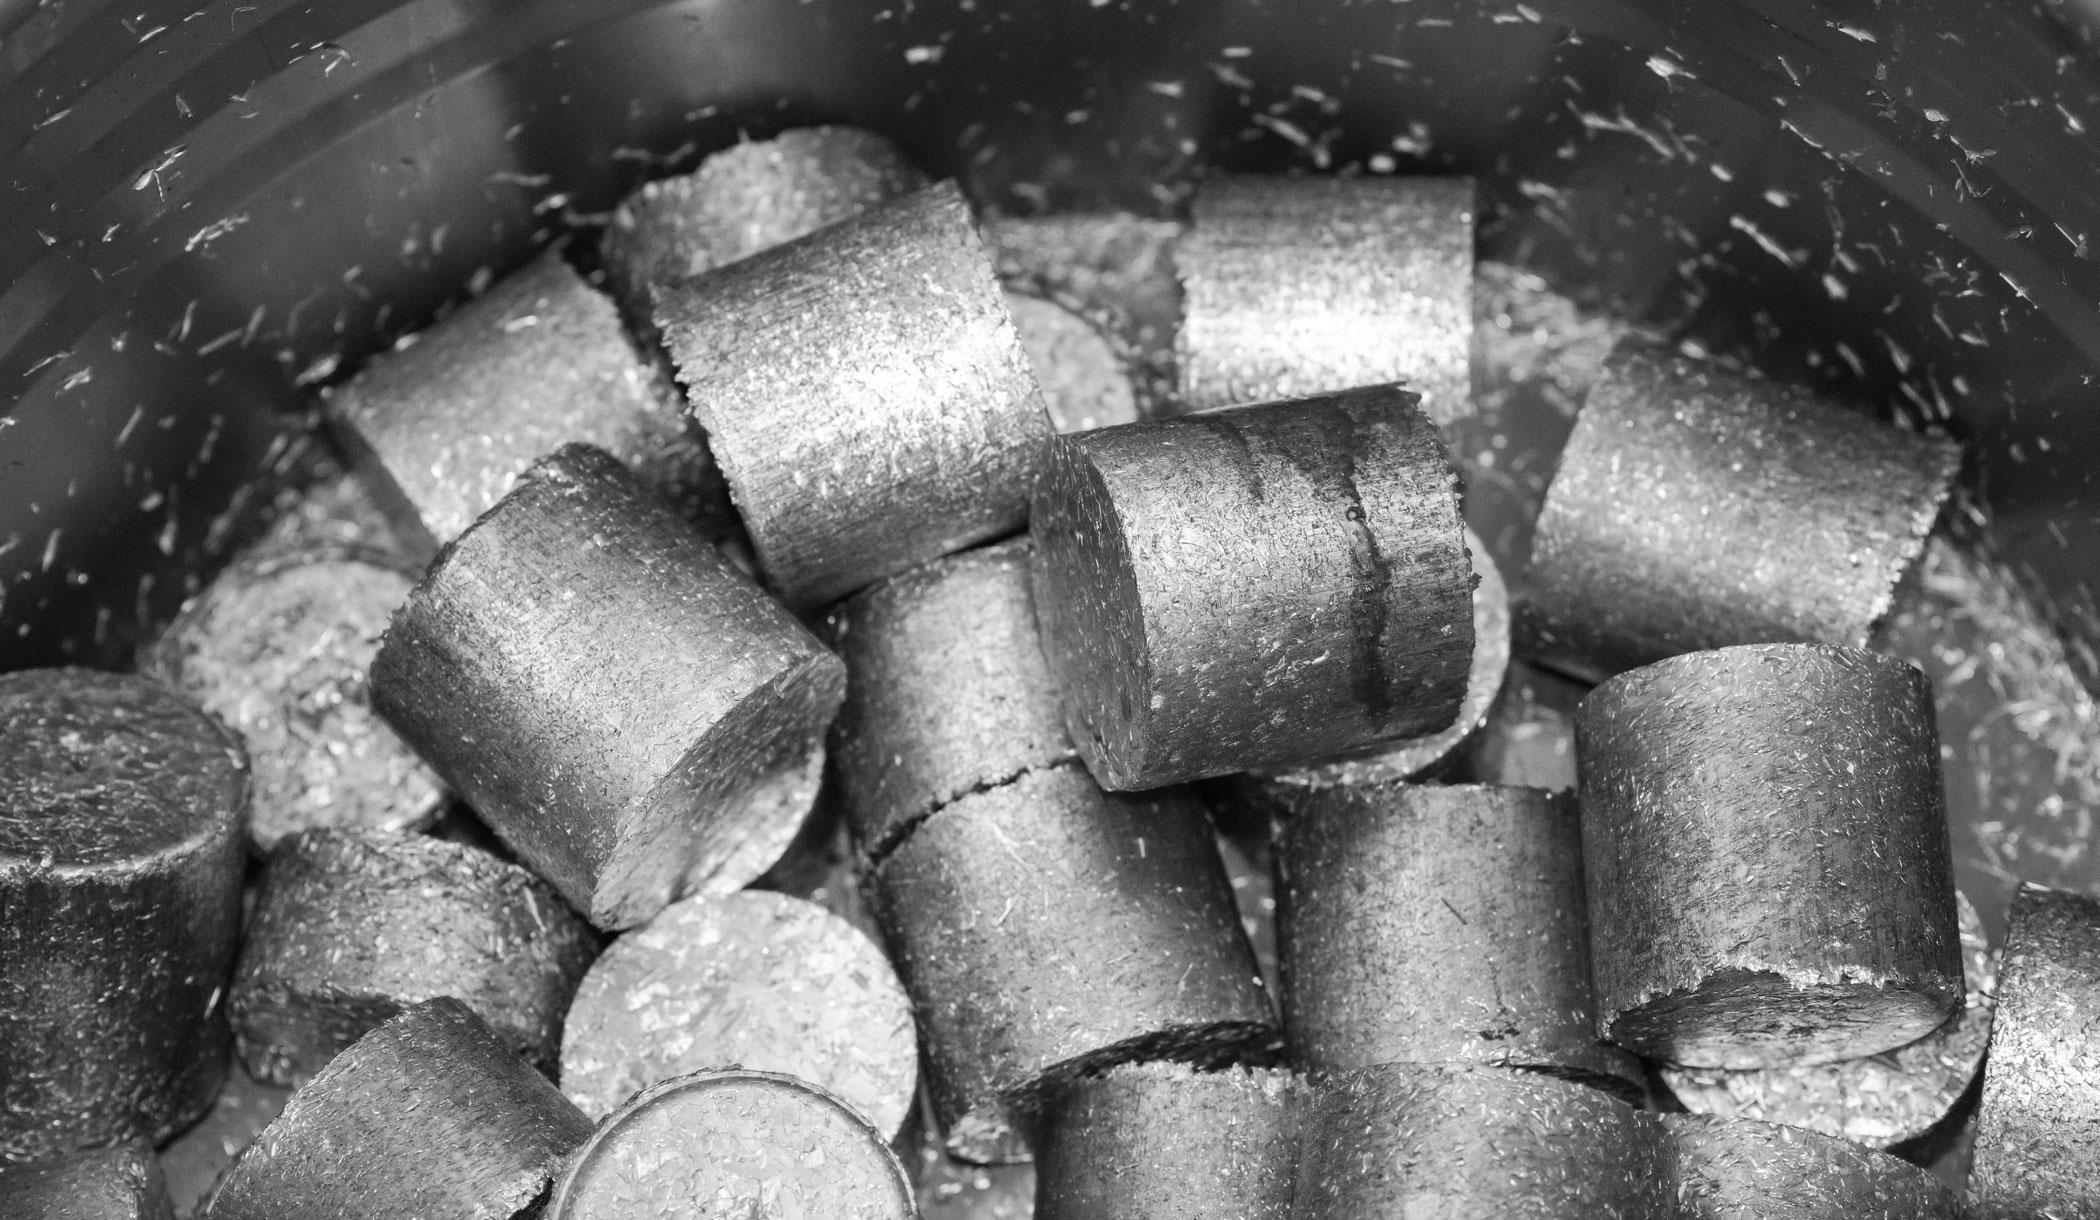 Round briquettes from light metal swarf